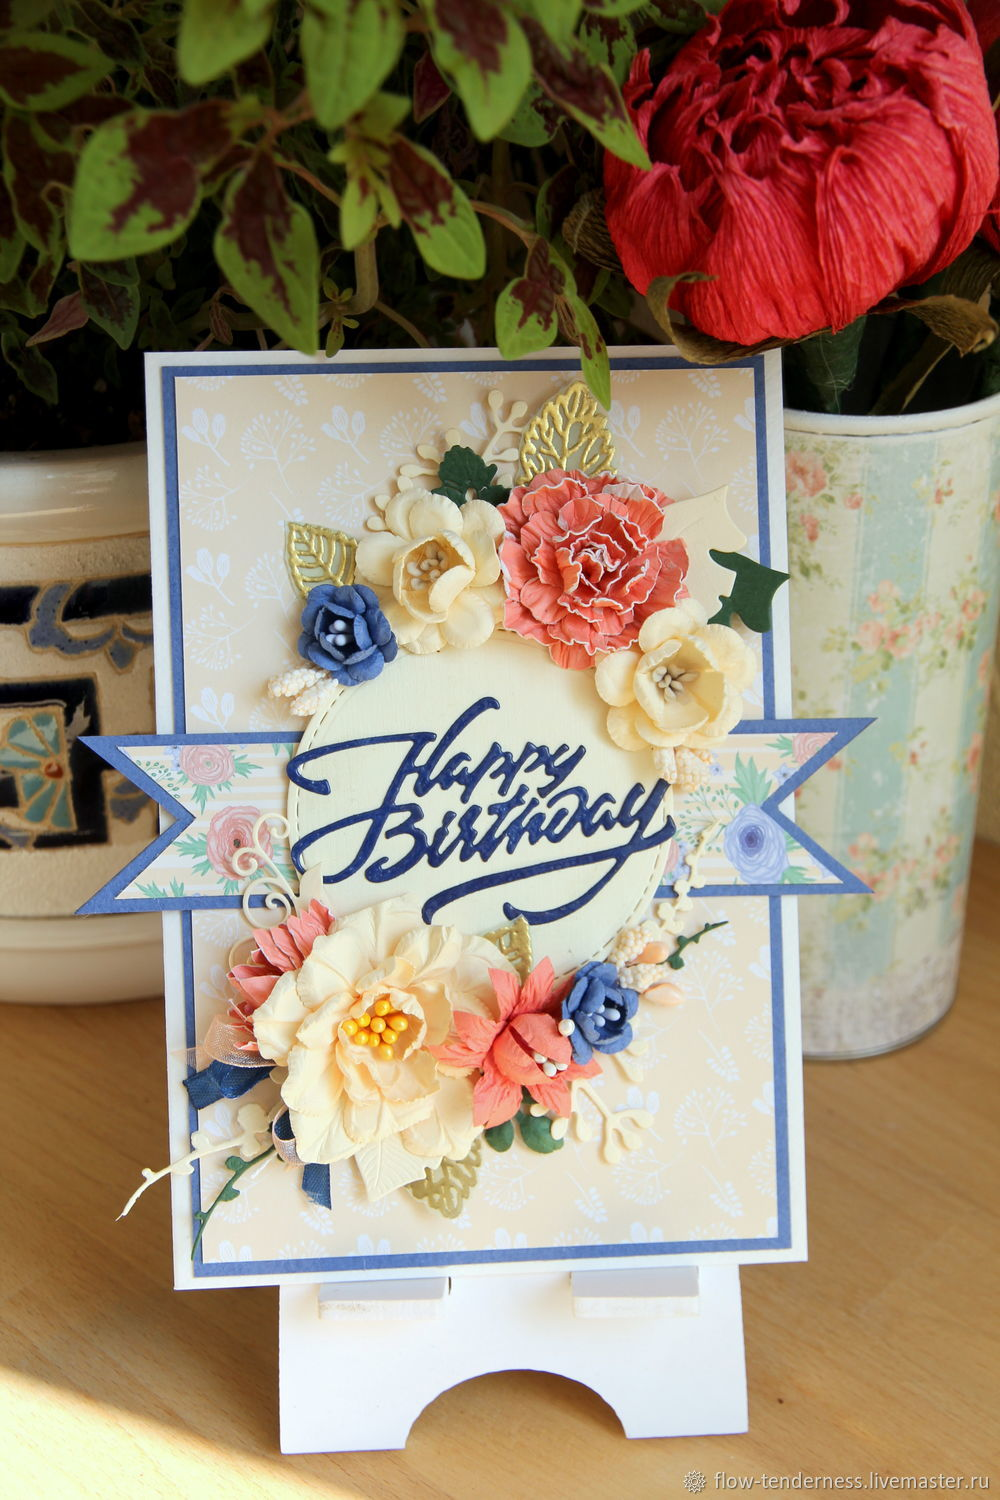 Greeting Card For Birthday Shop Online On Livemaster With Shipping